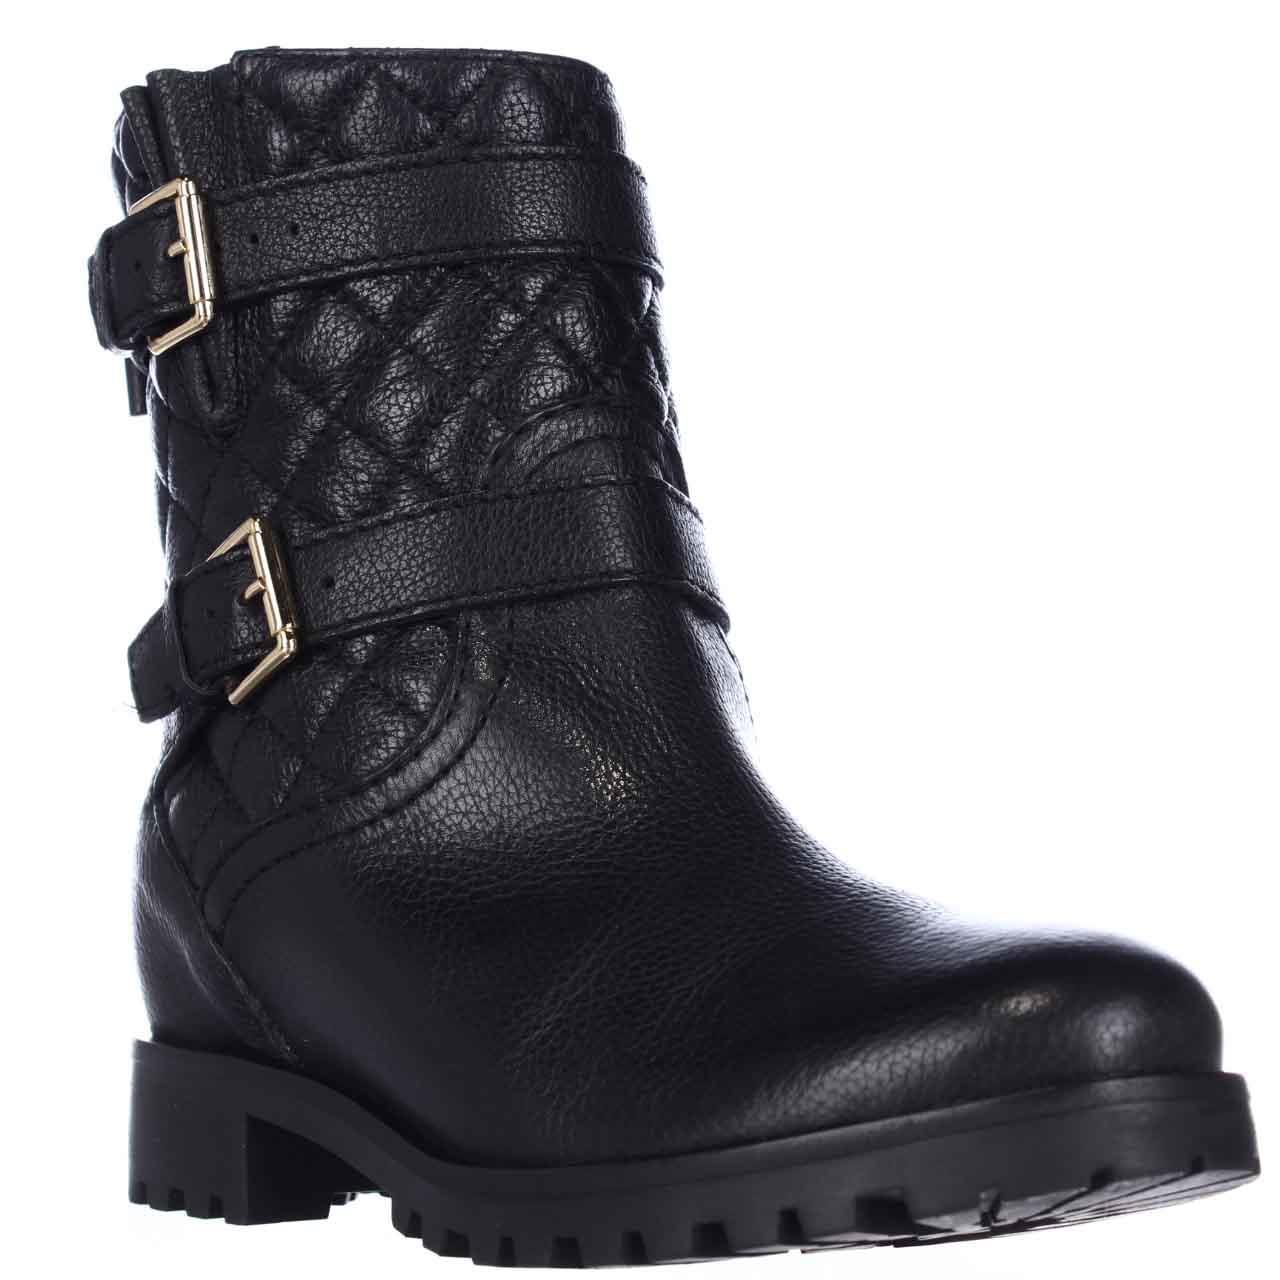 Womens Kate Spade Samara Quilted Motorcycle Boots, Black